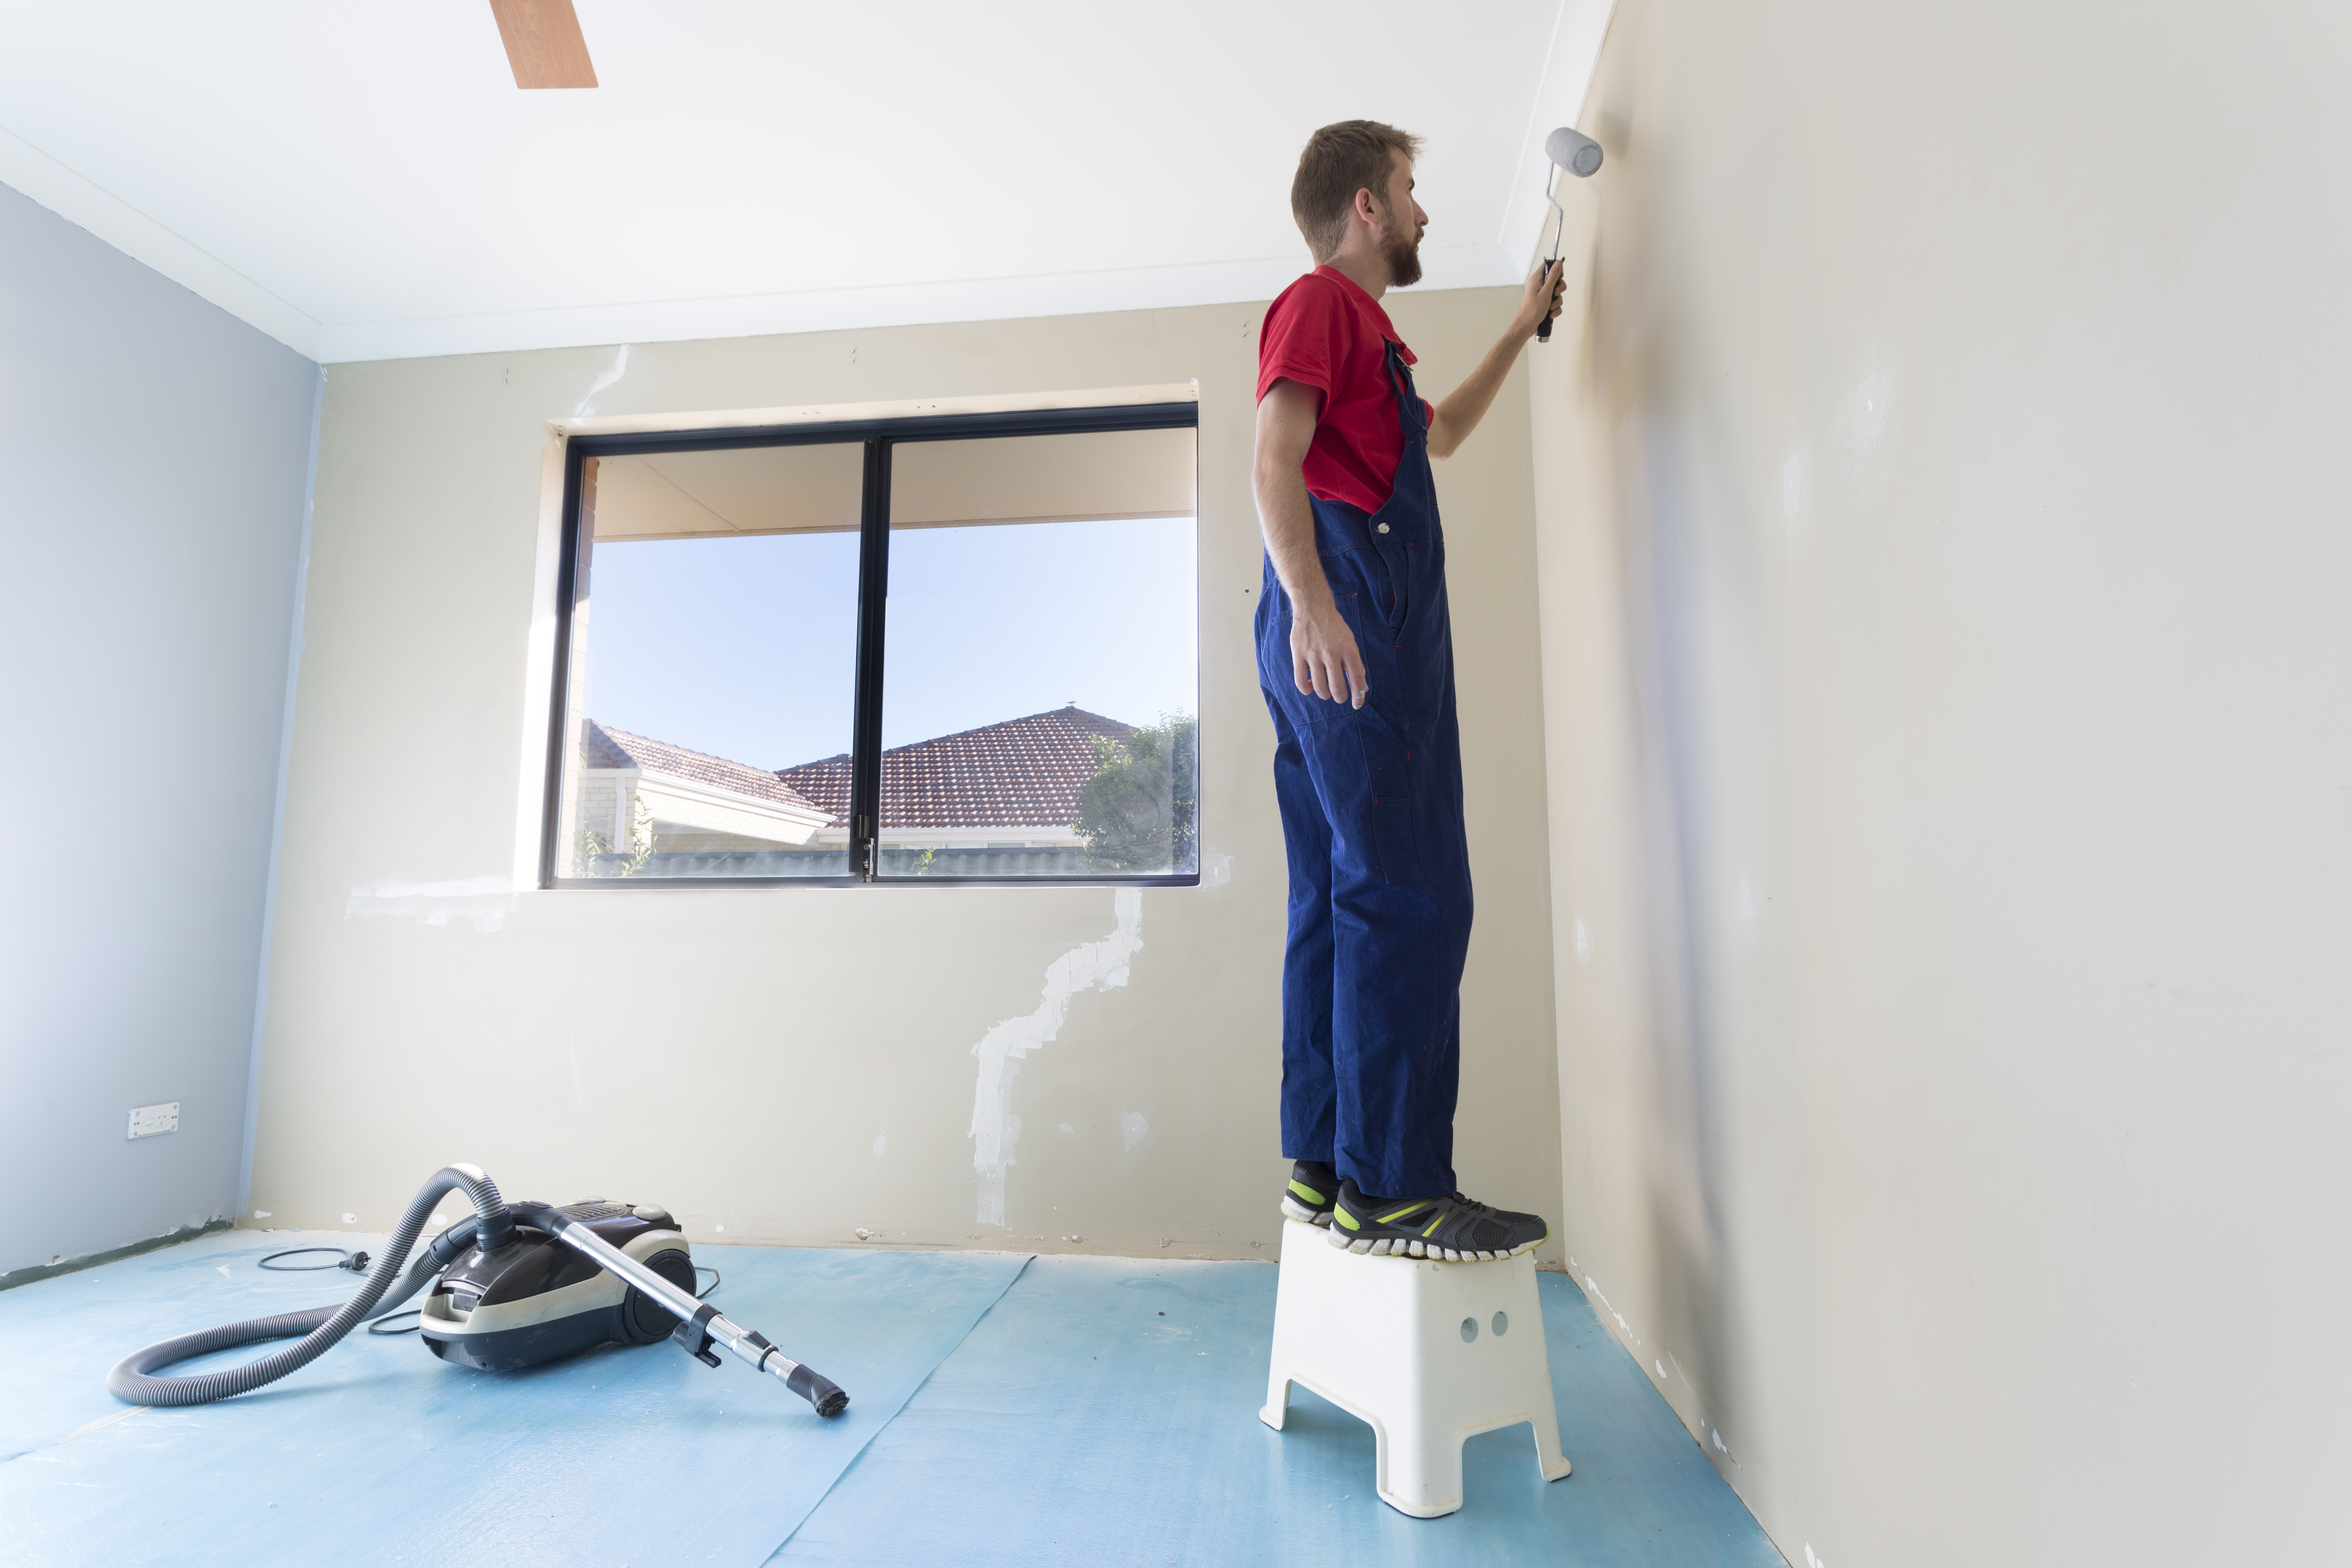 How to Apply Latex Paint Over Enamal Paint | Home Guides